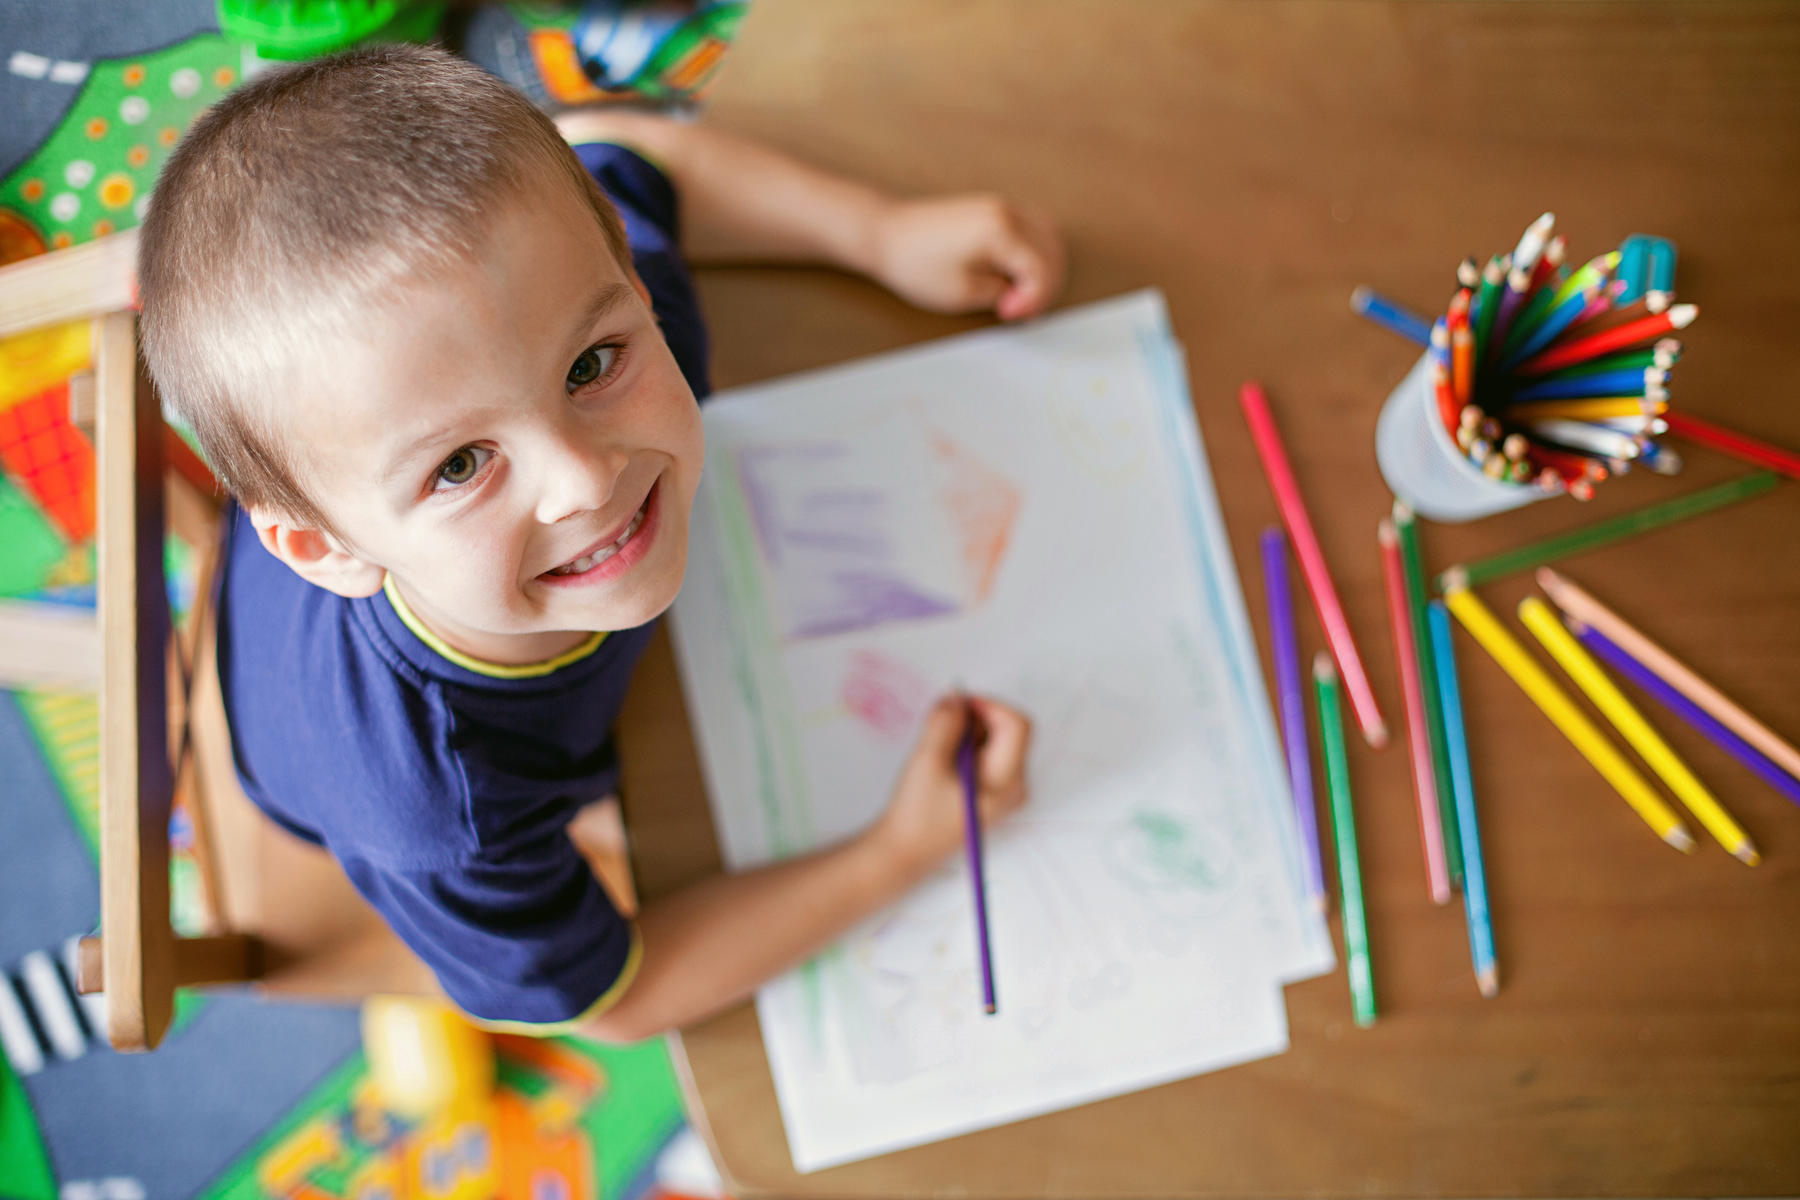 Kids Drawing Pictures, How to Draw Step By Step For Kids, How Pictures of kids drawings